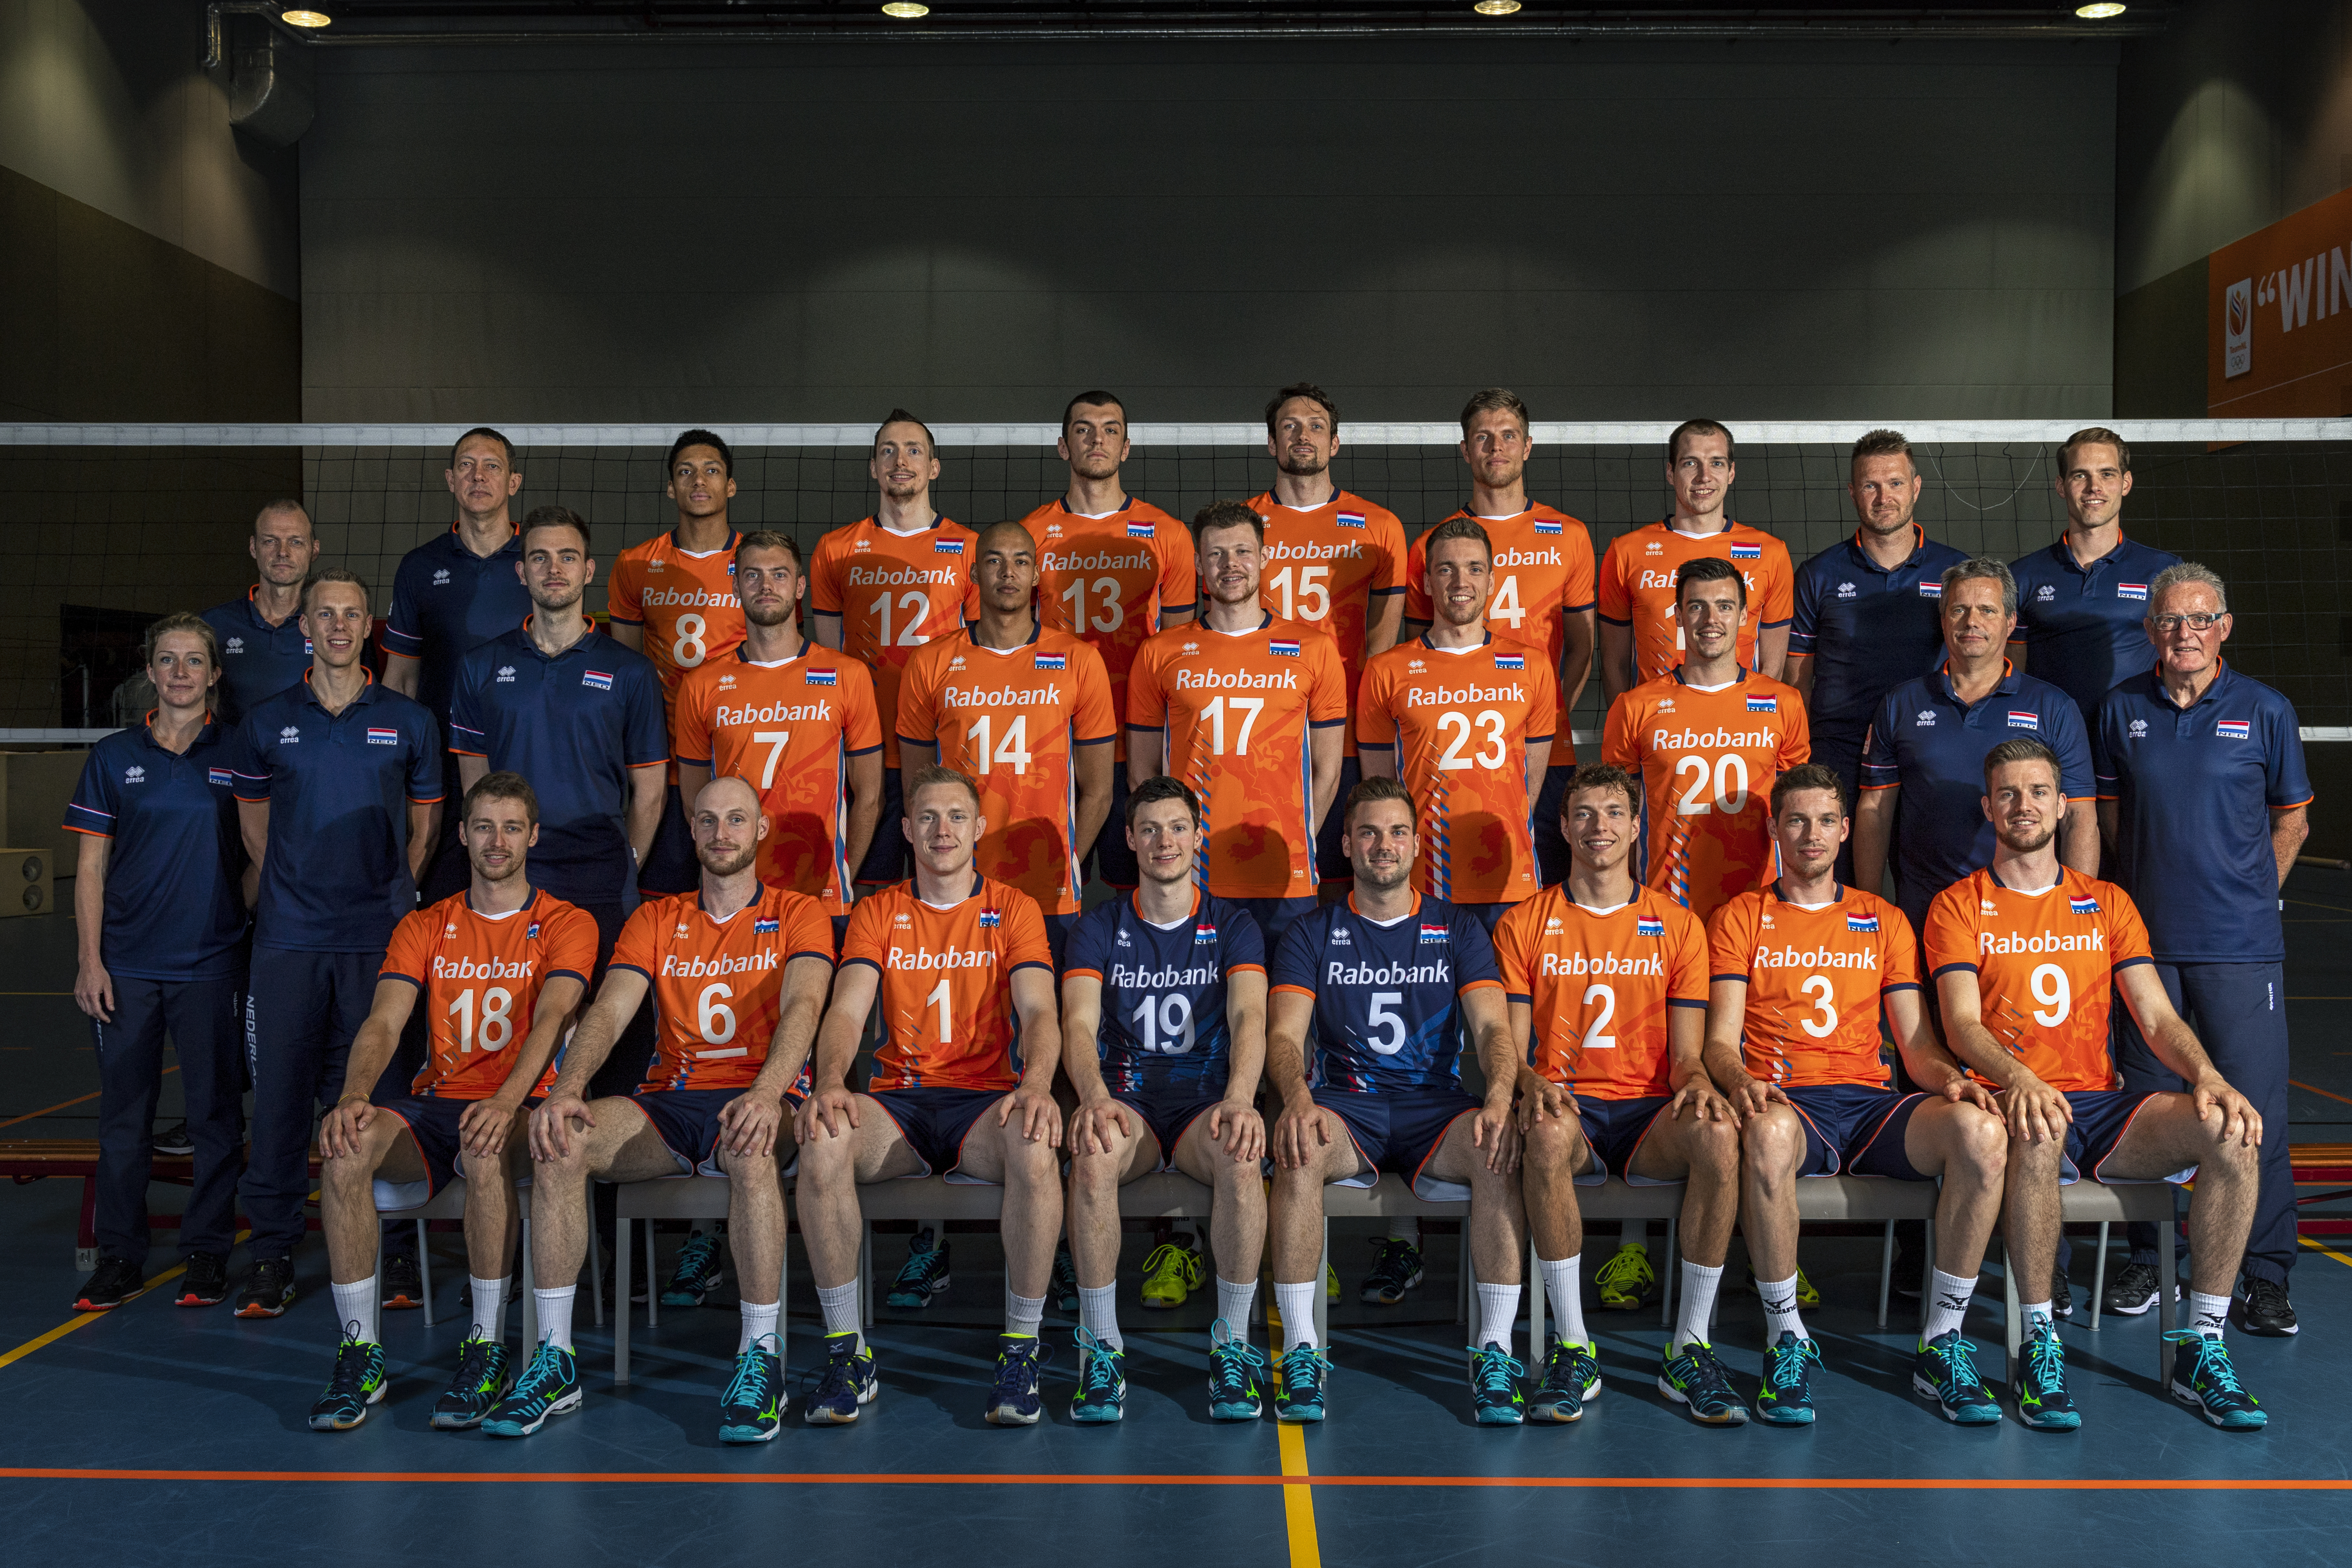 Overview Netherlands Fivb Volleyball Men S World Championship Italy And Bulgaria 2018